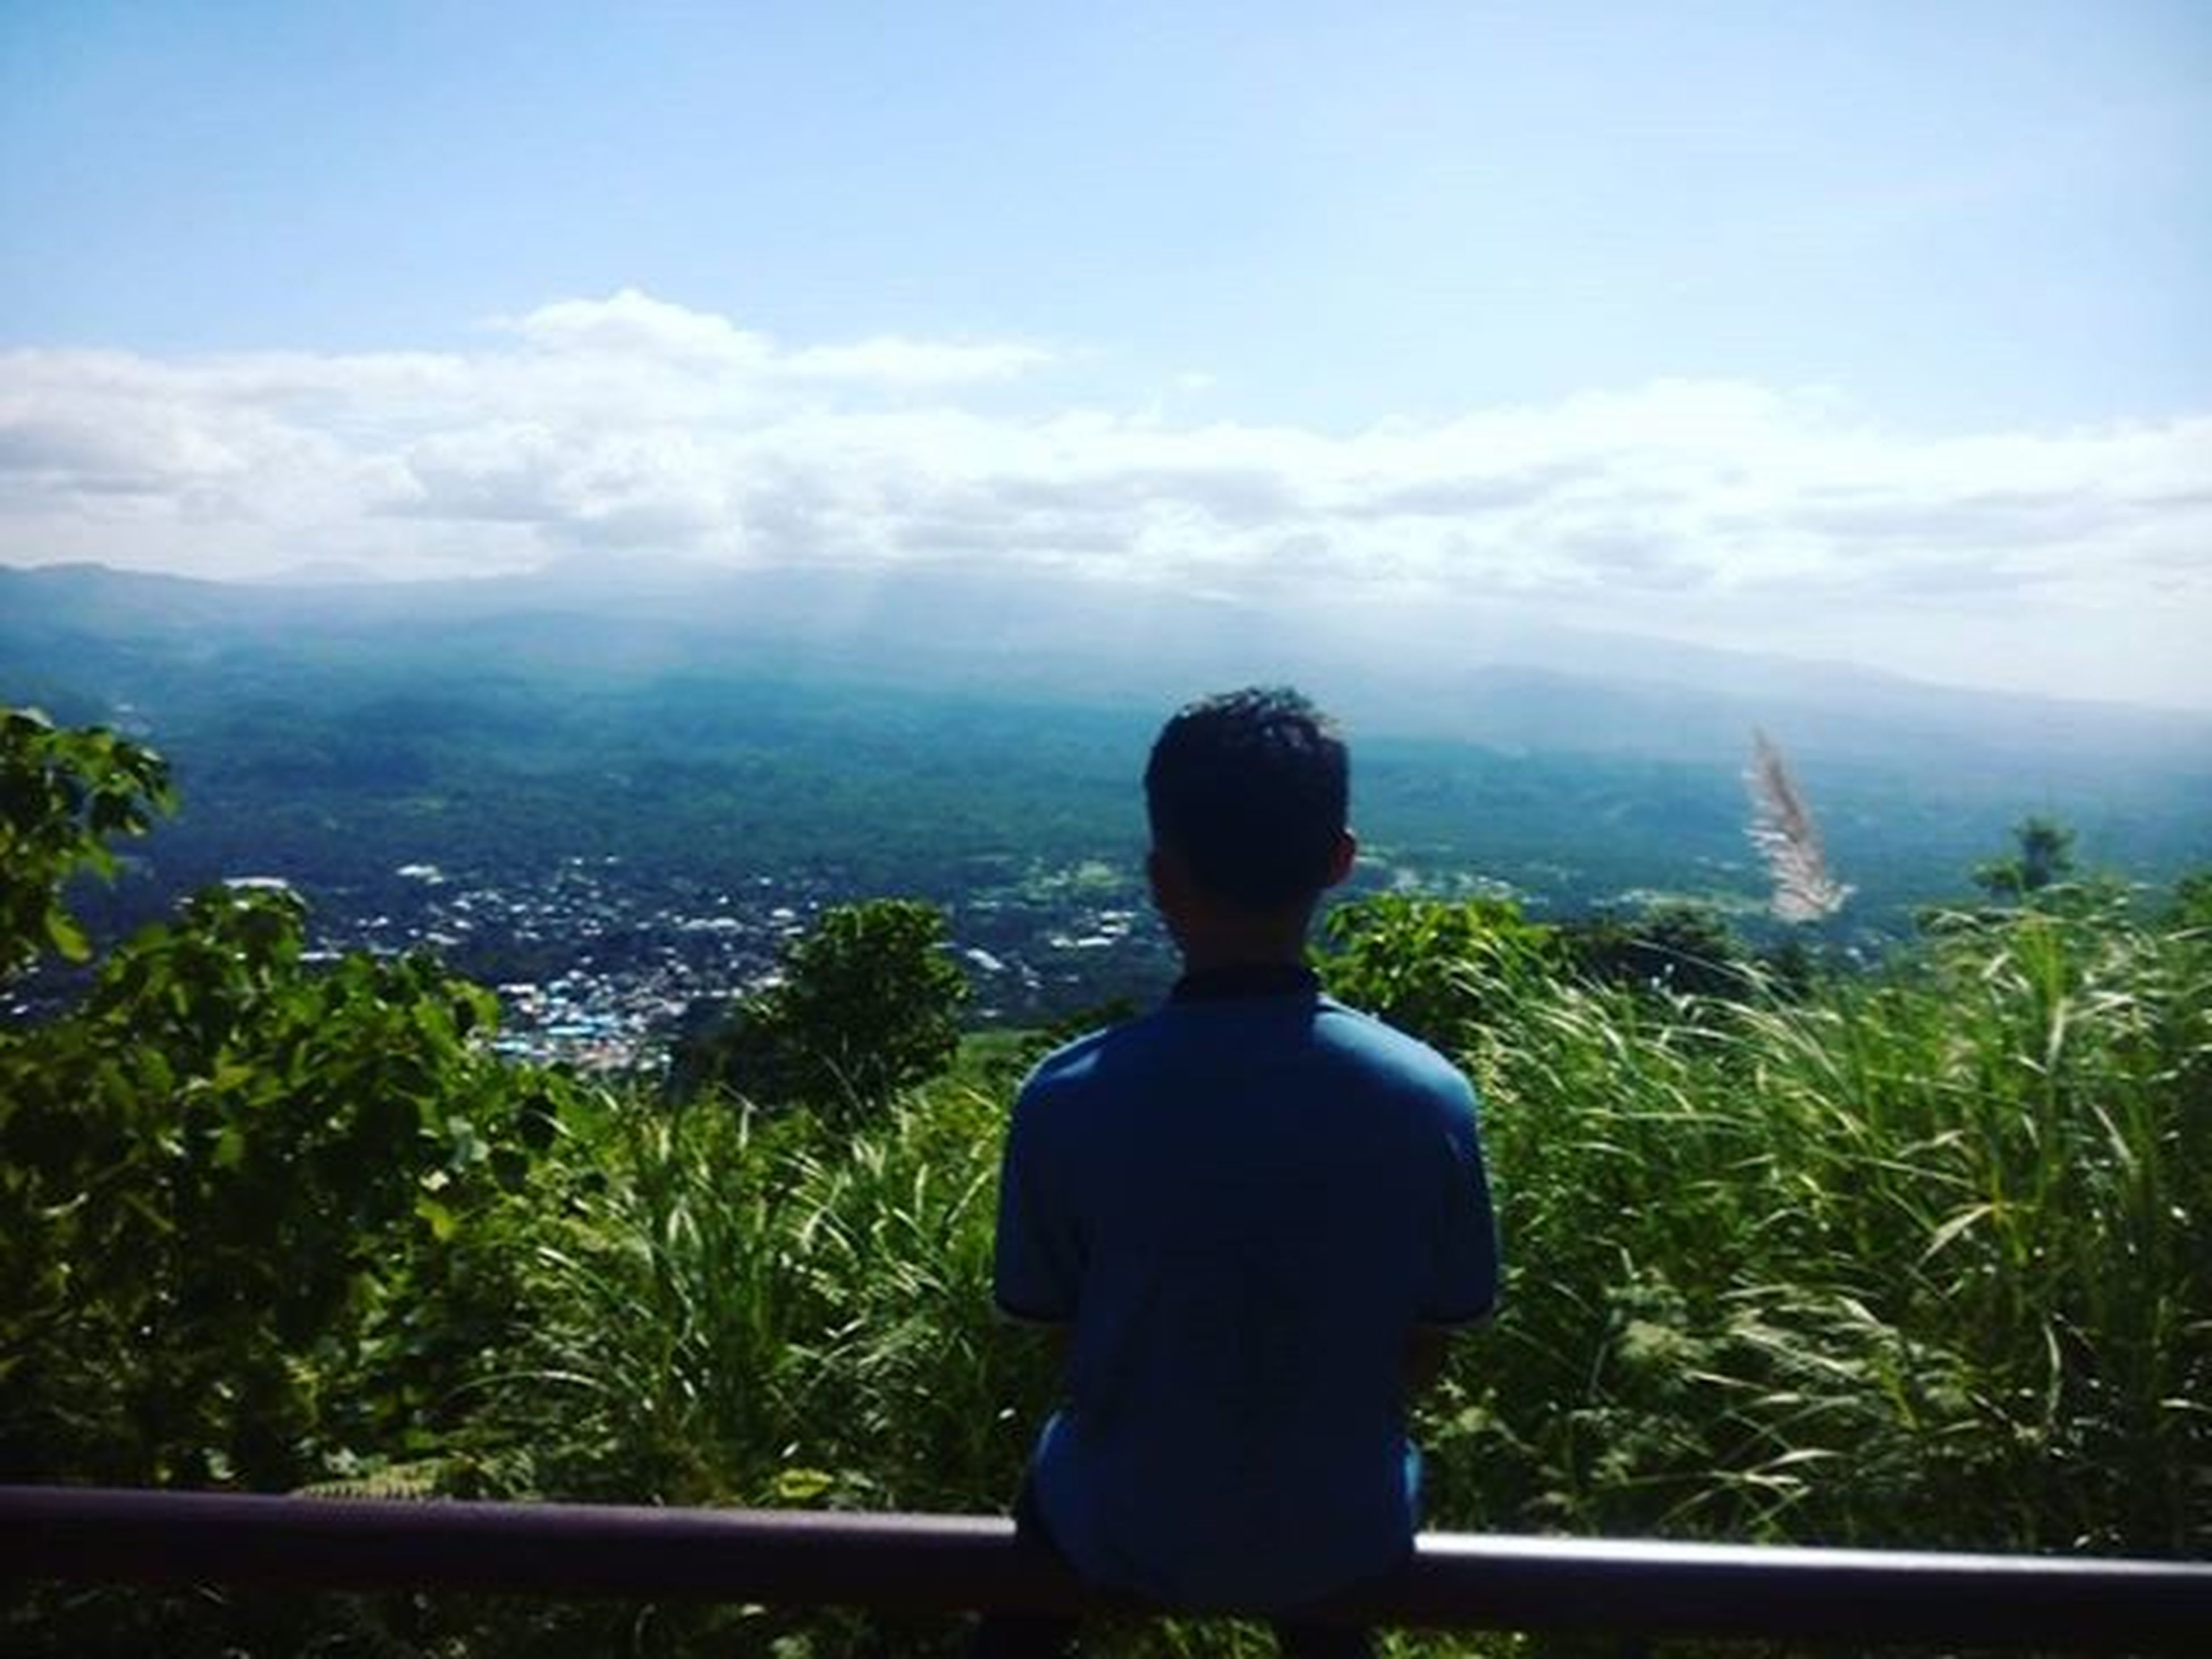 rear view, sky, mountain, lifestyles, leisure activity, looking at view, standing, nature, tranquility, beauty in nature, landscape, three quarter length, tranquil scene, scenics, cloud - sky, casual clothing, waist up, tree